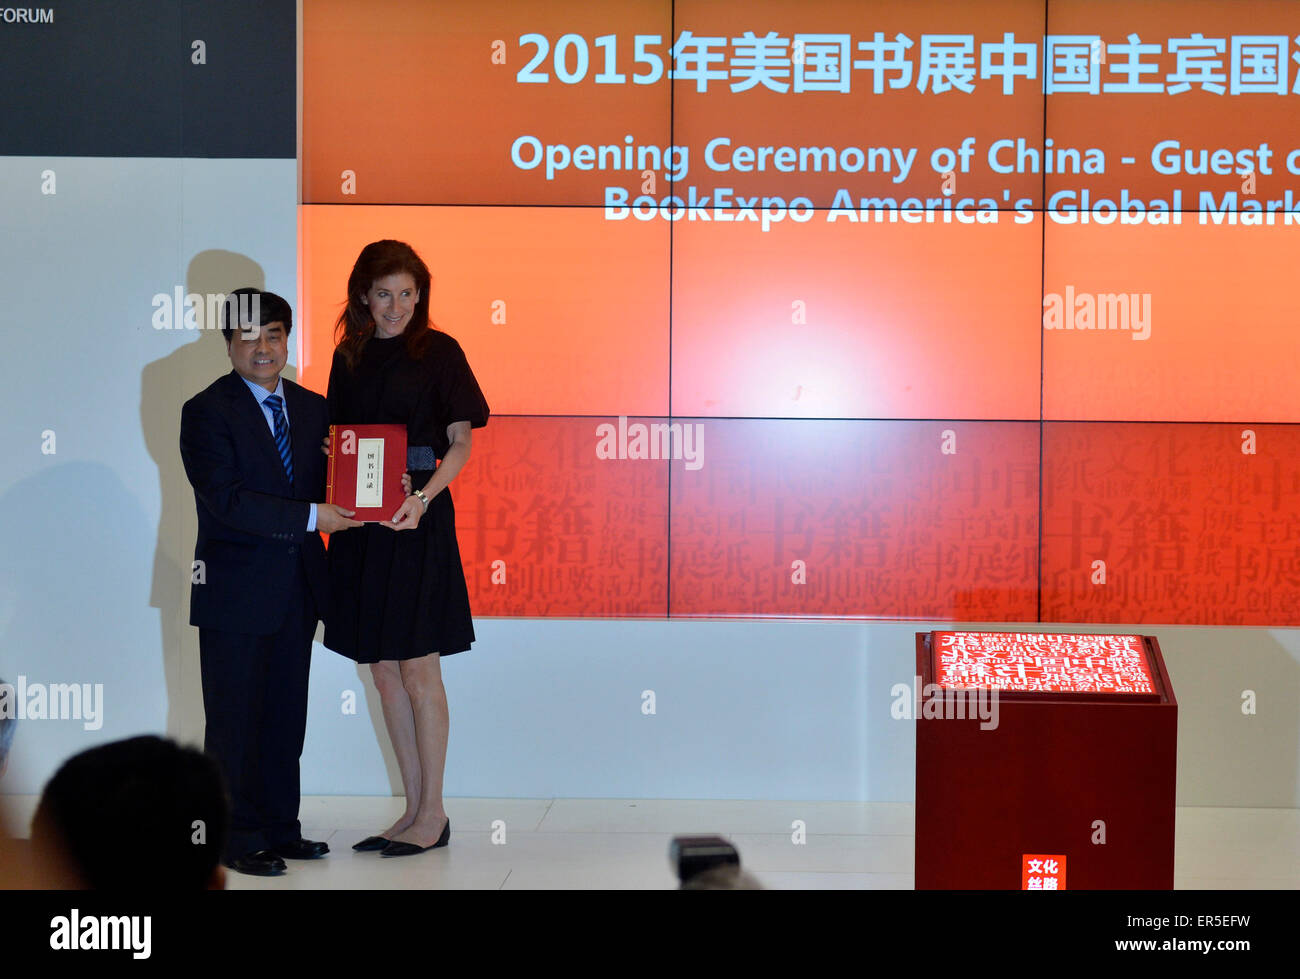 """(150527) -- NEW YORK, May 27, 2015 (Xinhua) -- Wu Shangzhi(L), vice minister of China's State Administration of Press, Publication, Radio, Film and Television, gives a book as gifts to Linda Johnson, the President & CEO of Brooklyn Public Library during the opening ceremony of China-Guest of Honor 2015 BookExpo America's Global Market Forum in New York, the United States, on May 27, 2015. Bringing in nearly 10,000 book titles from some 150 publishers, China came under the spotlight in this """"publishing and cultural capital of the world"""" as BookExpo America (BEA) 2015 kicked off in New York City Stock Photo"""